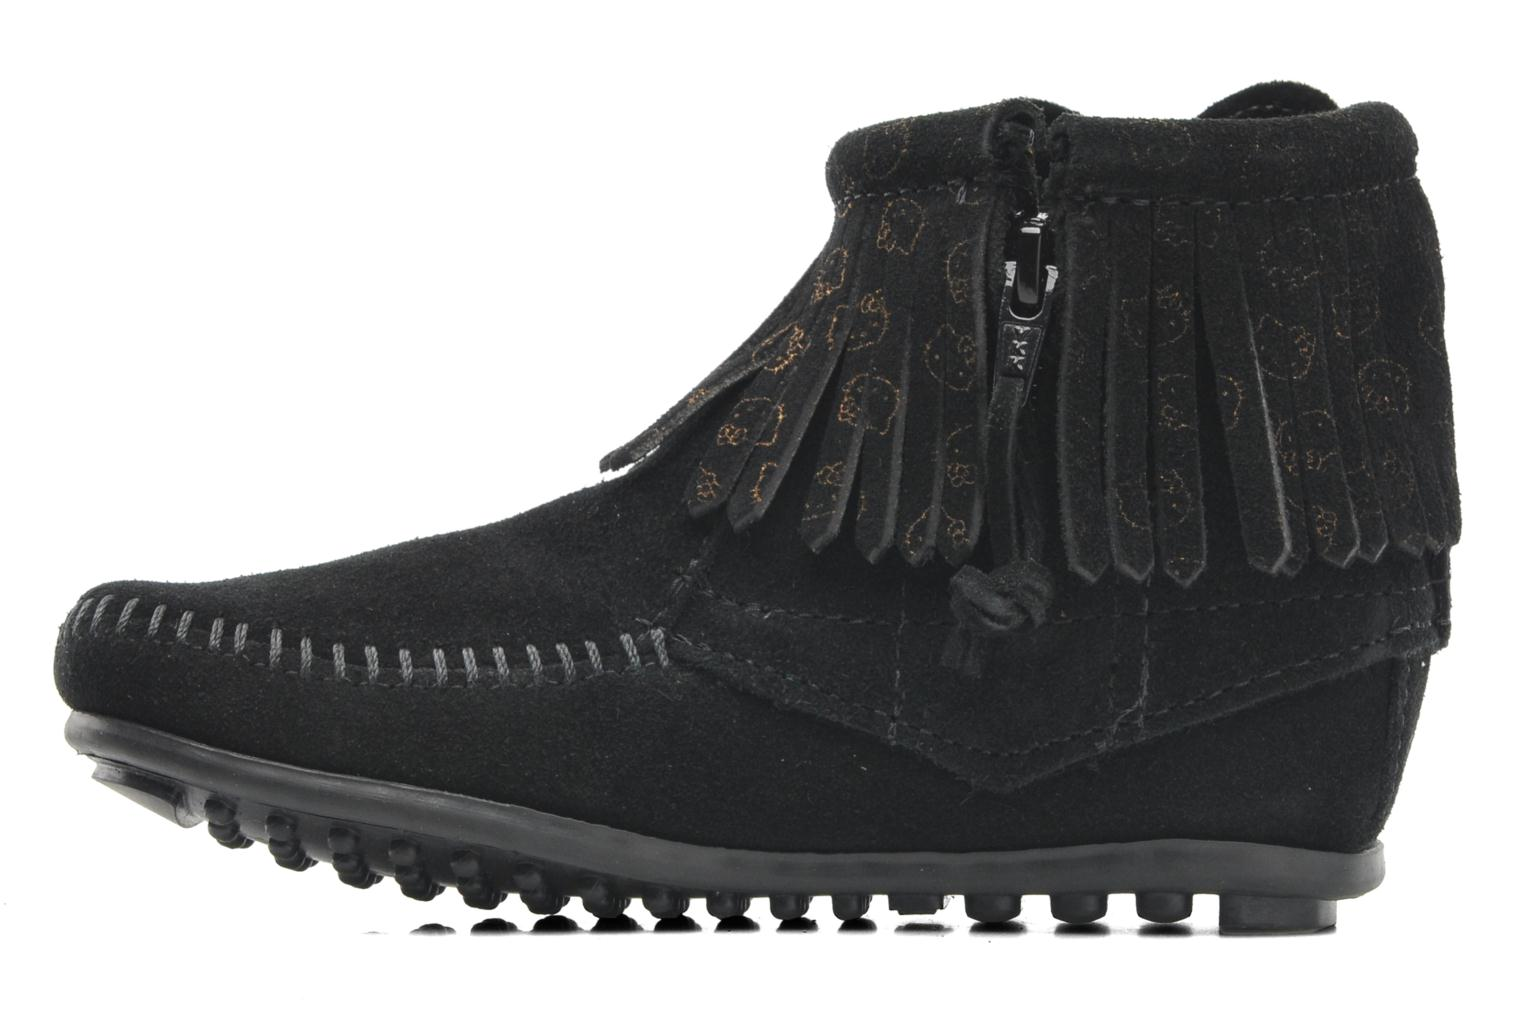 Bottines et boots Minnetonka Hello Kitty Fringe Bootie Noir vue face